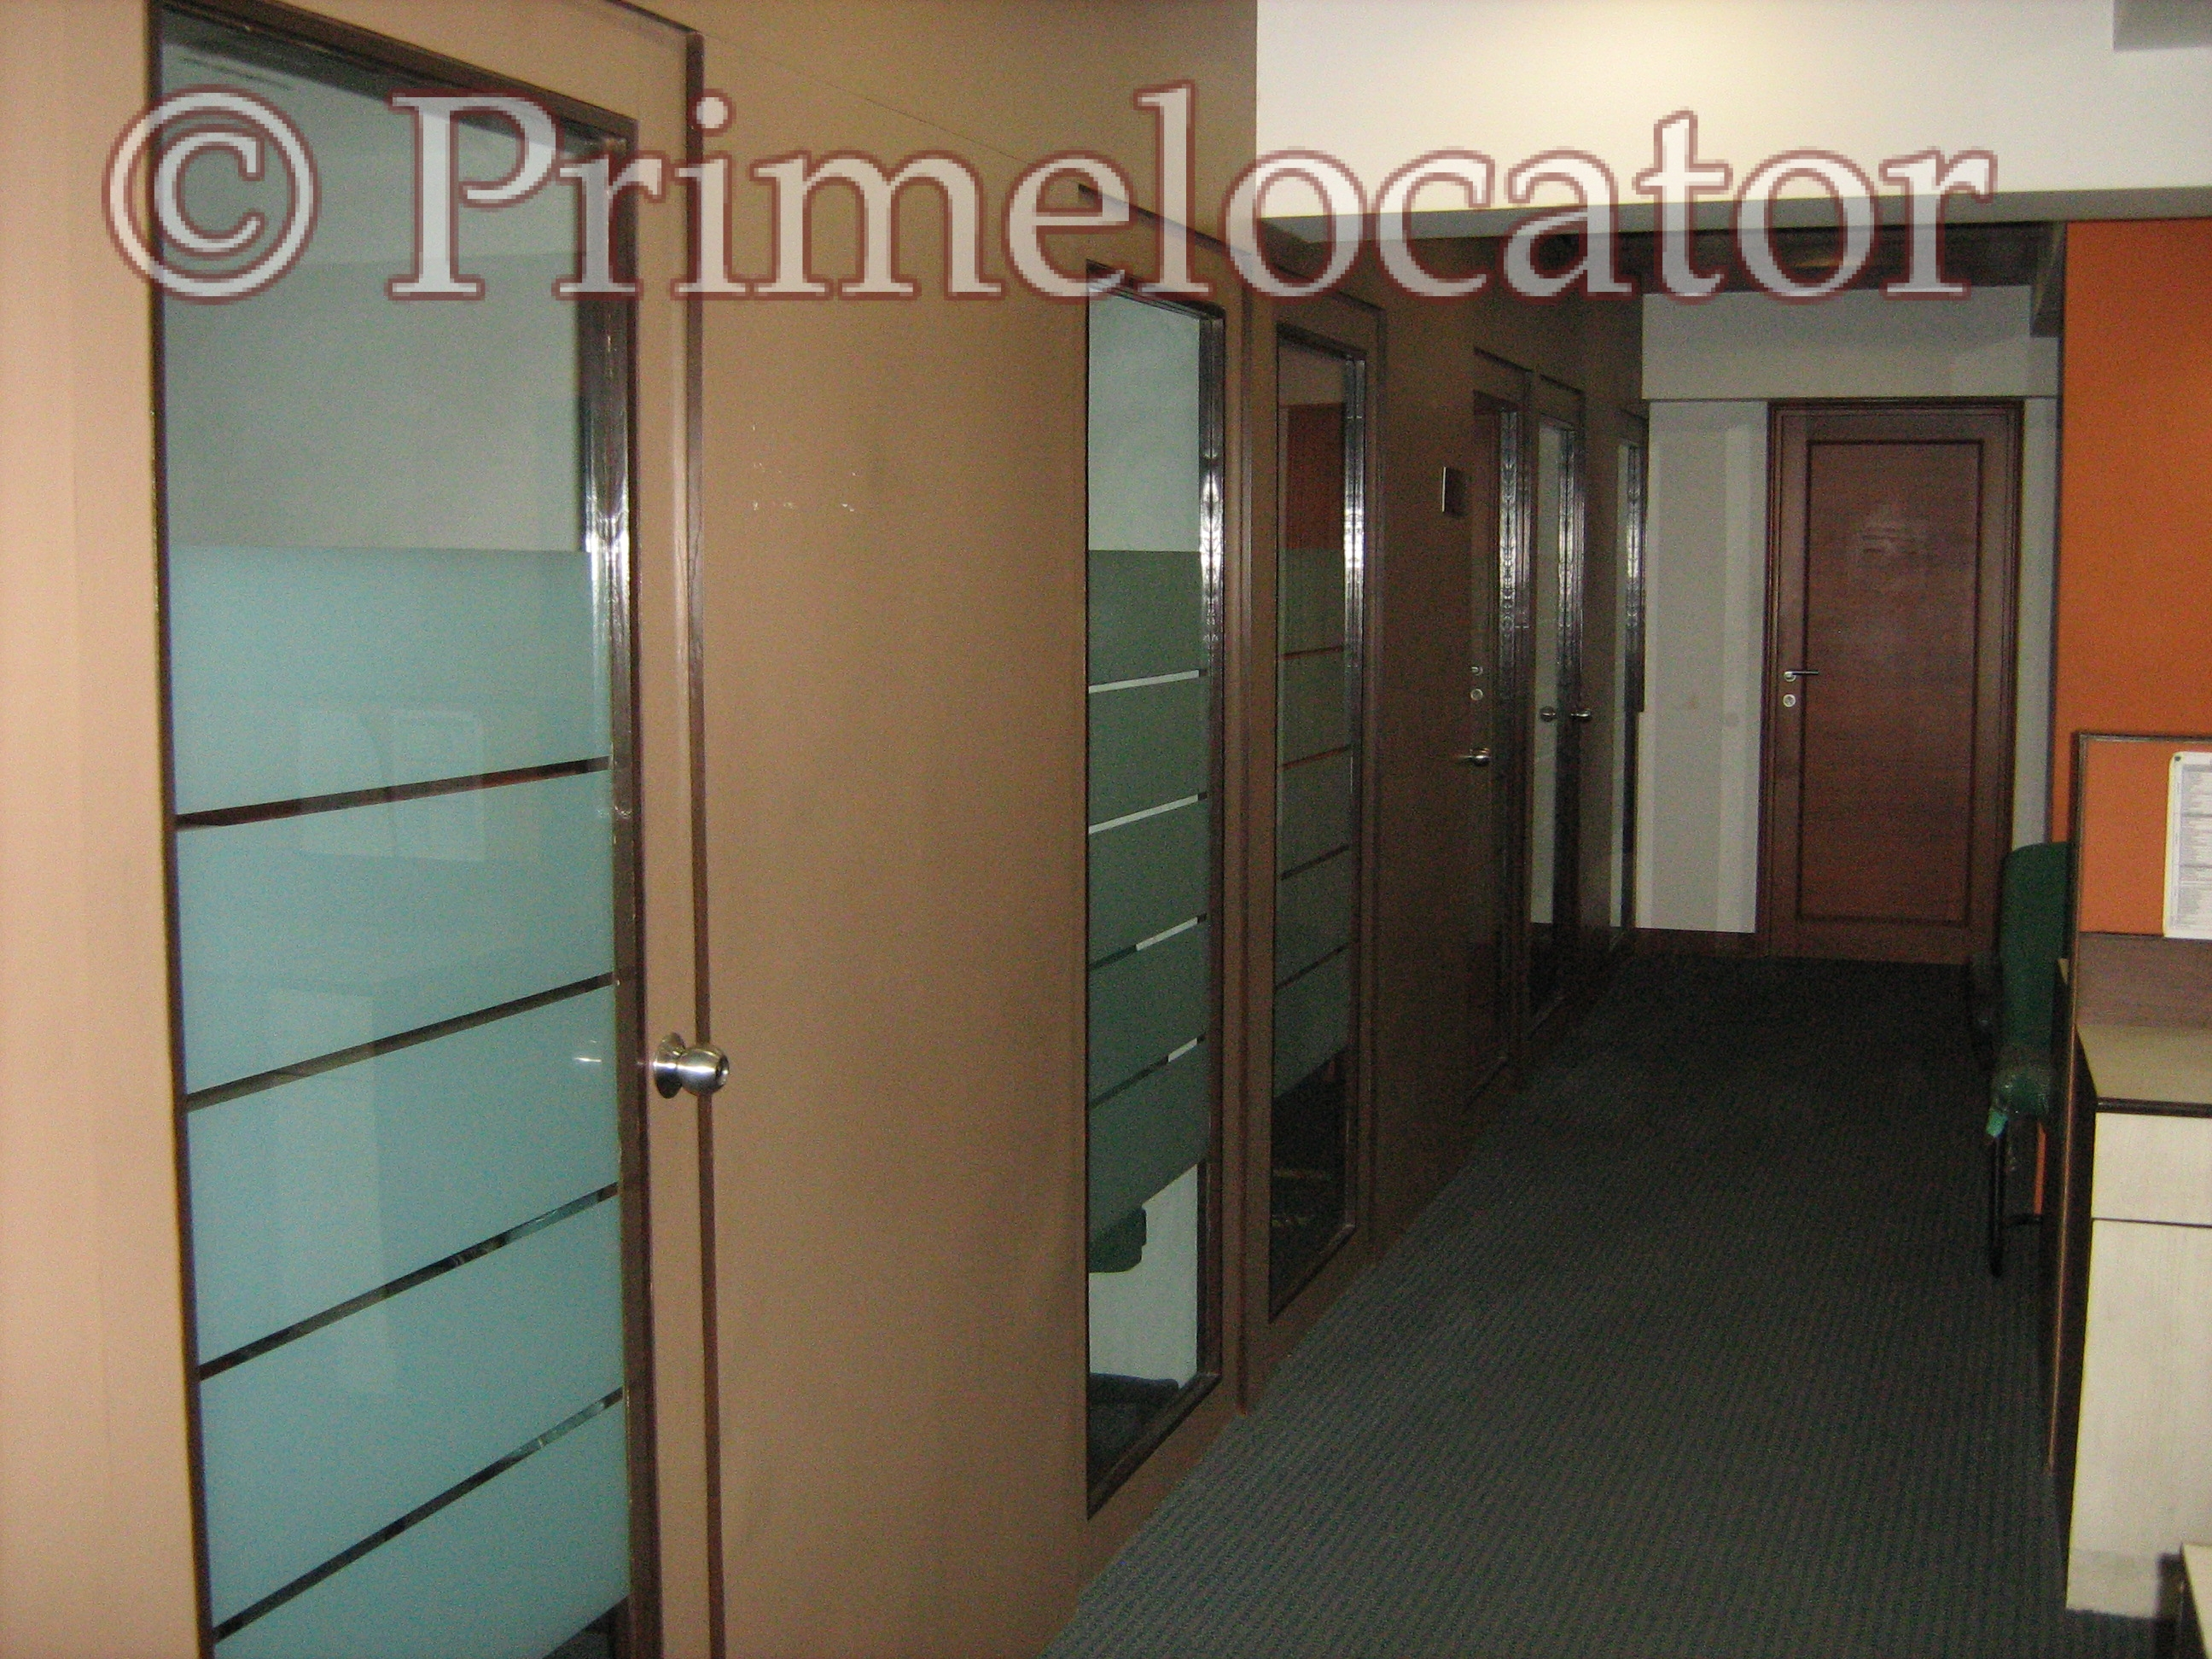 Office Space for rental, commercial property rental in chennai ...